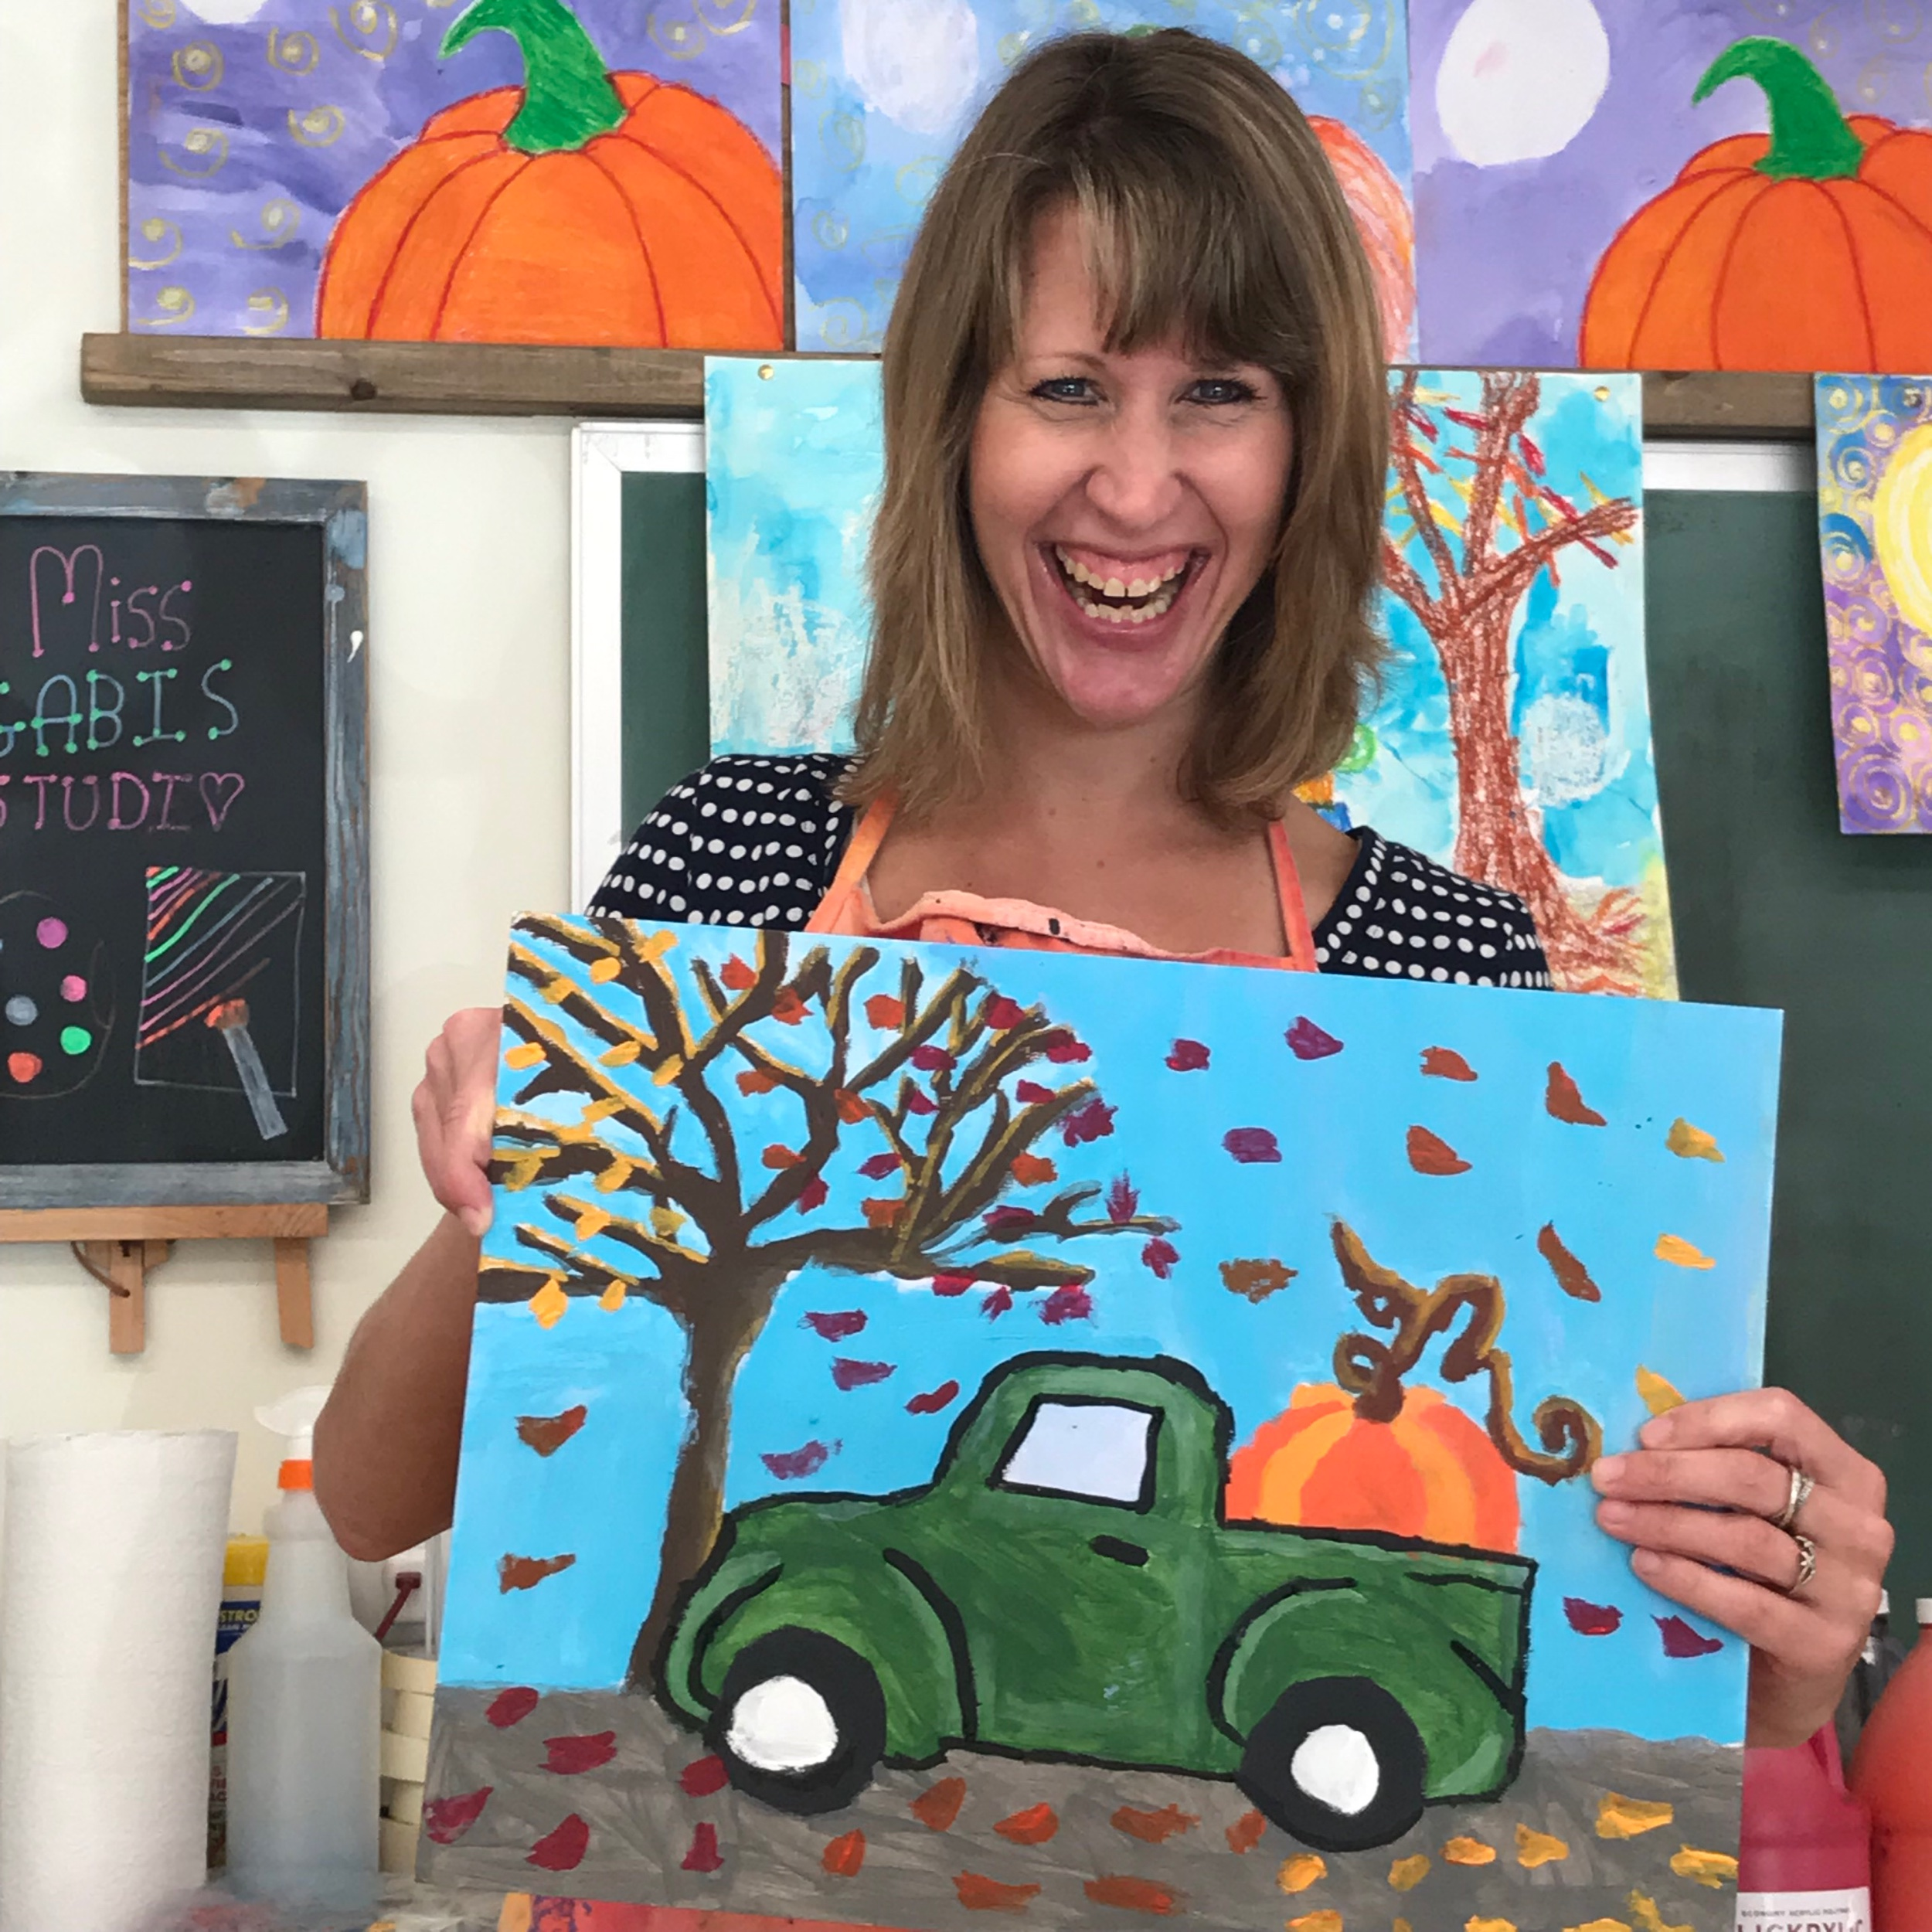 Miss KATIE and her amazing fall themed pickup truck!